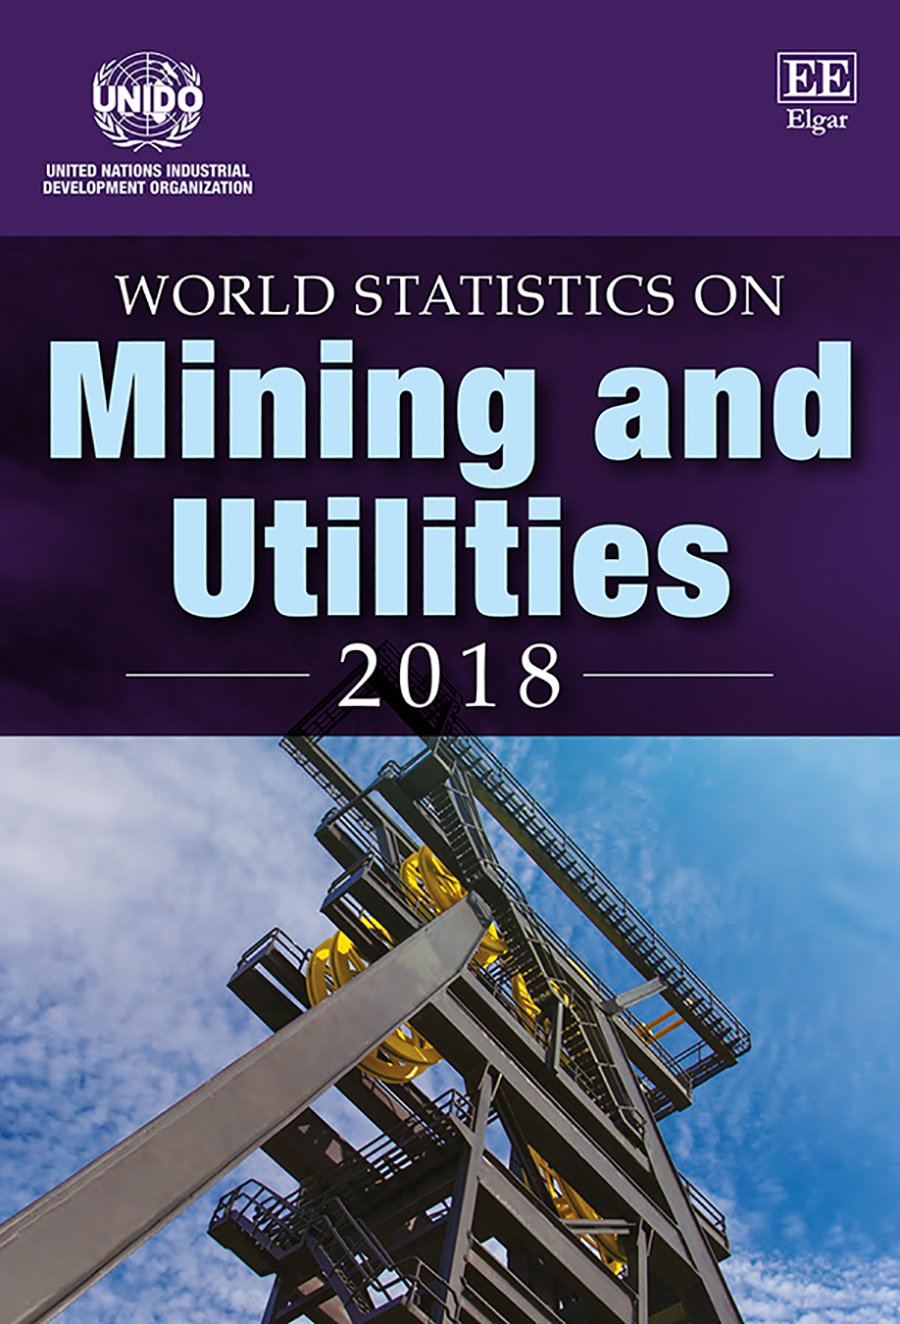 Download Ebook World Statistics on Mining and Utilities 2018 by UNIDO Pdf